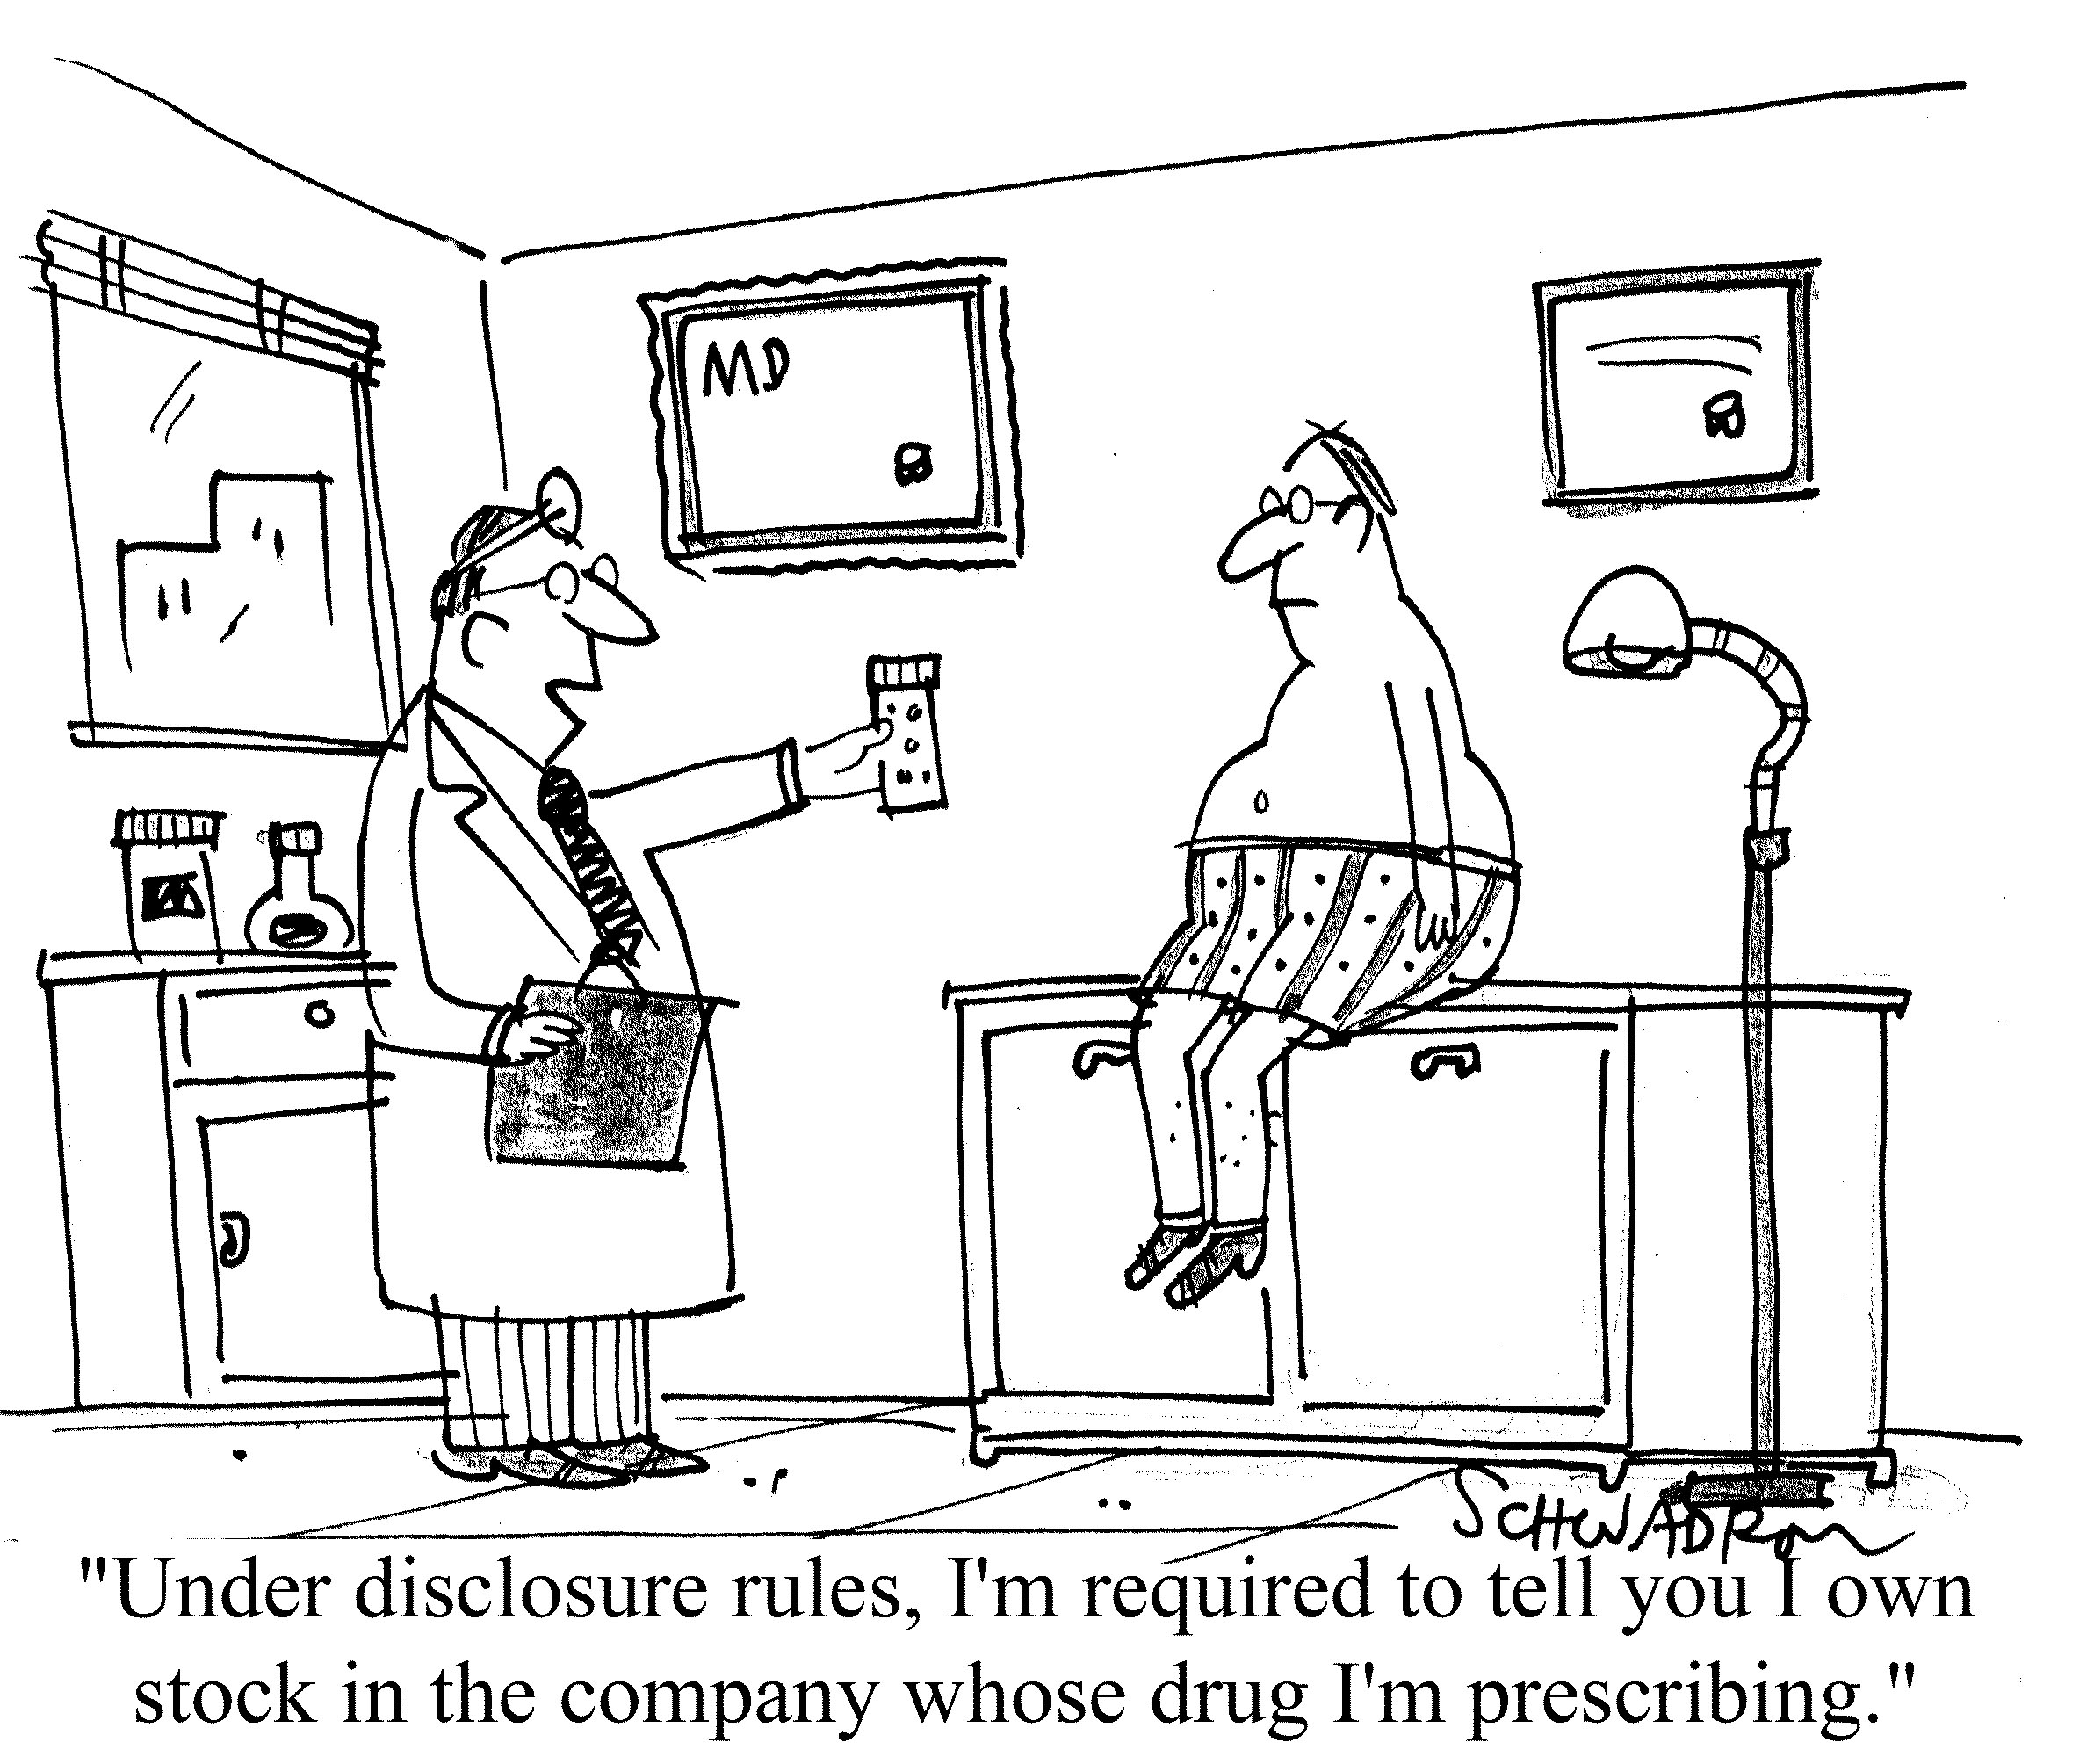 consumerism healthcare transparency will you thrive or survive Public Health Educator Resume Sample disclosure cartoon